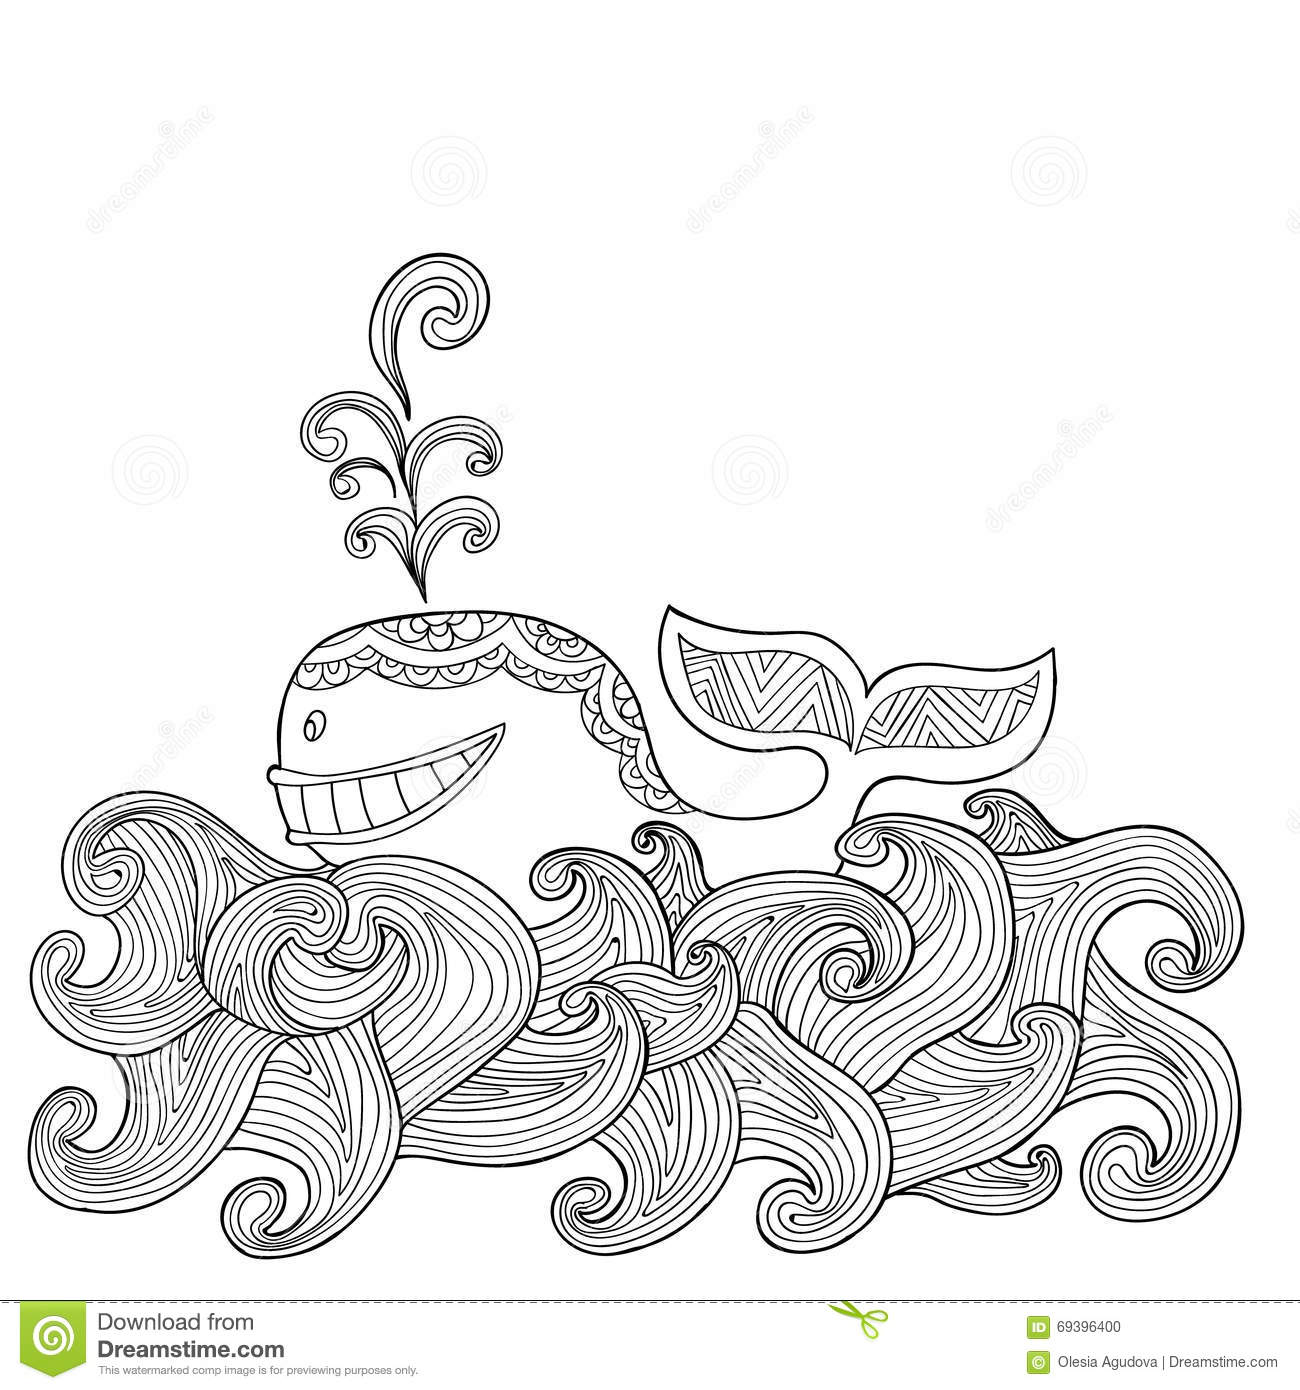 Dolphin Zentangle Vector Illustration